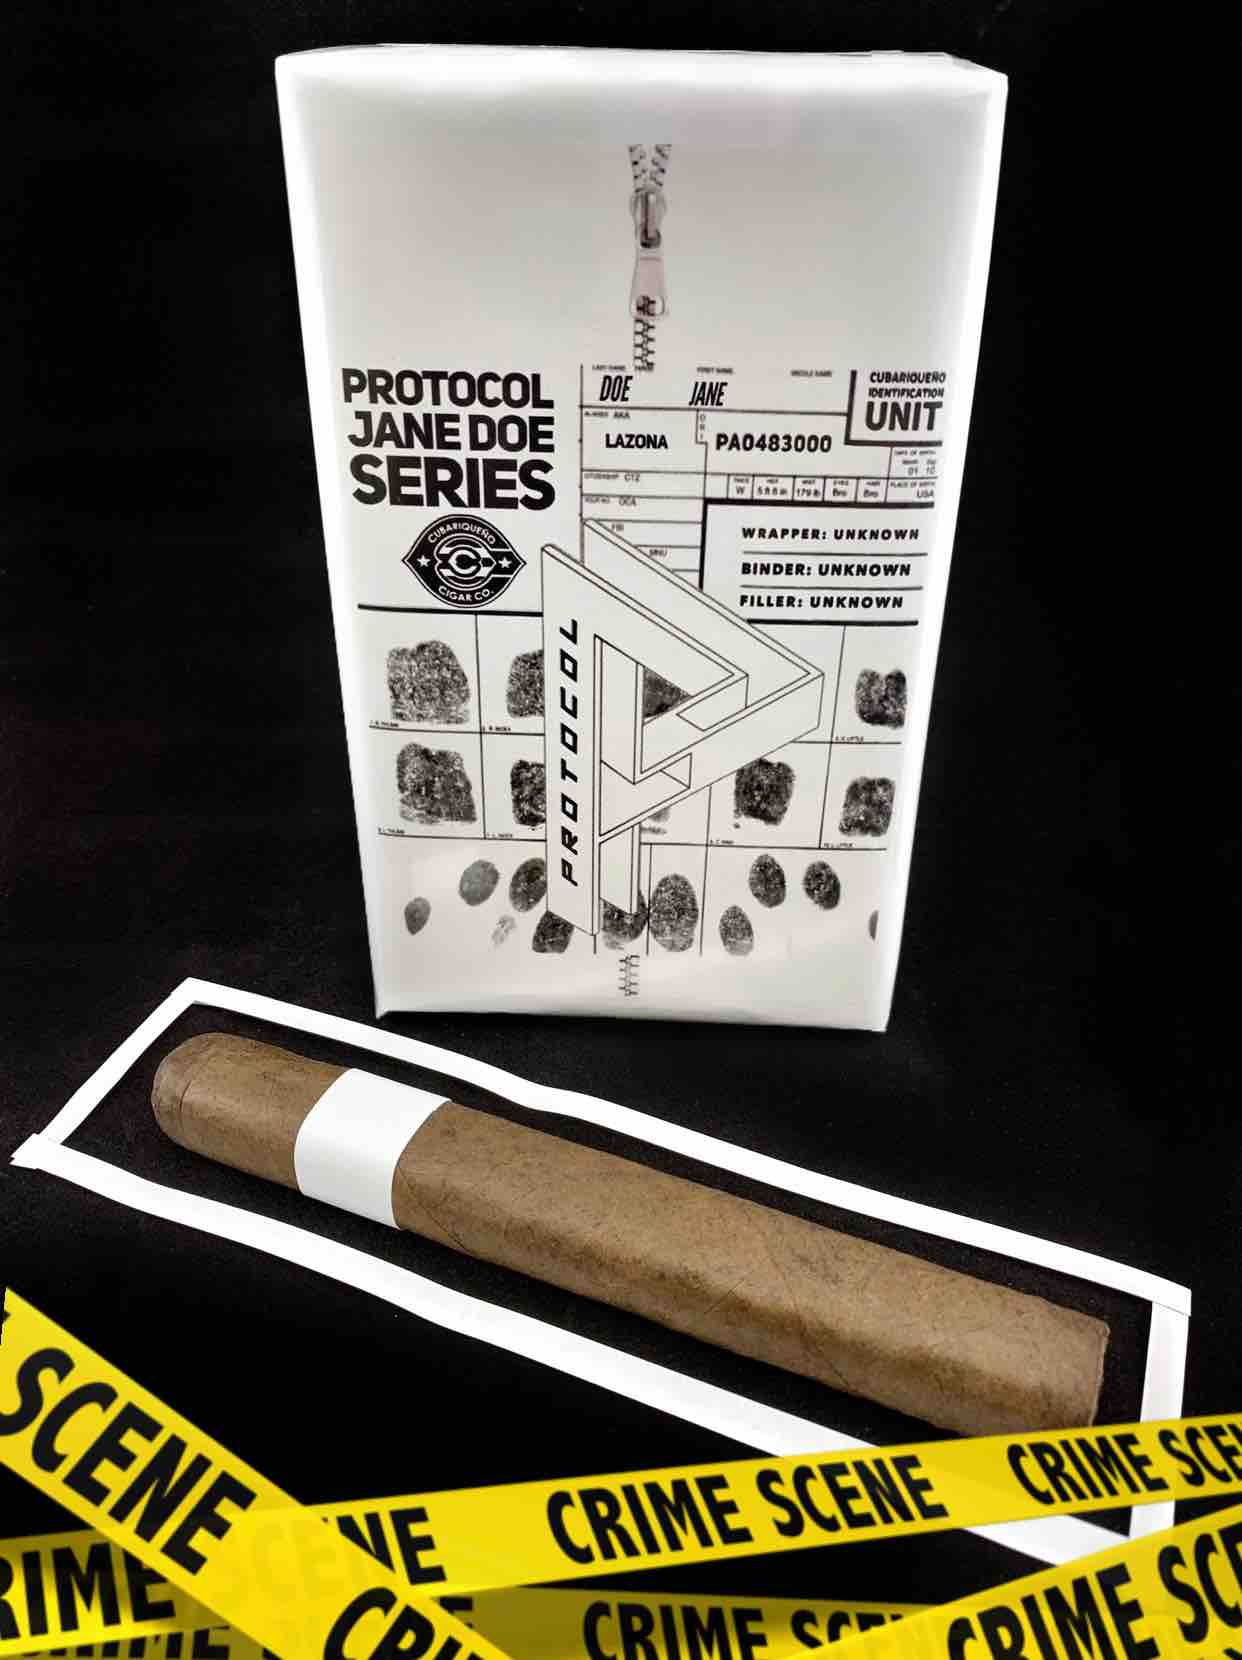 Cigar News: Cubariqueño Cigar Company to Release Protocol Jane Doe Series